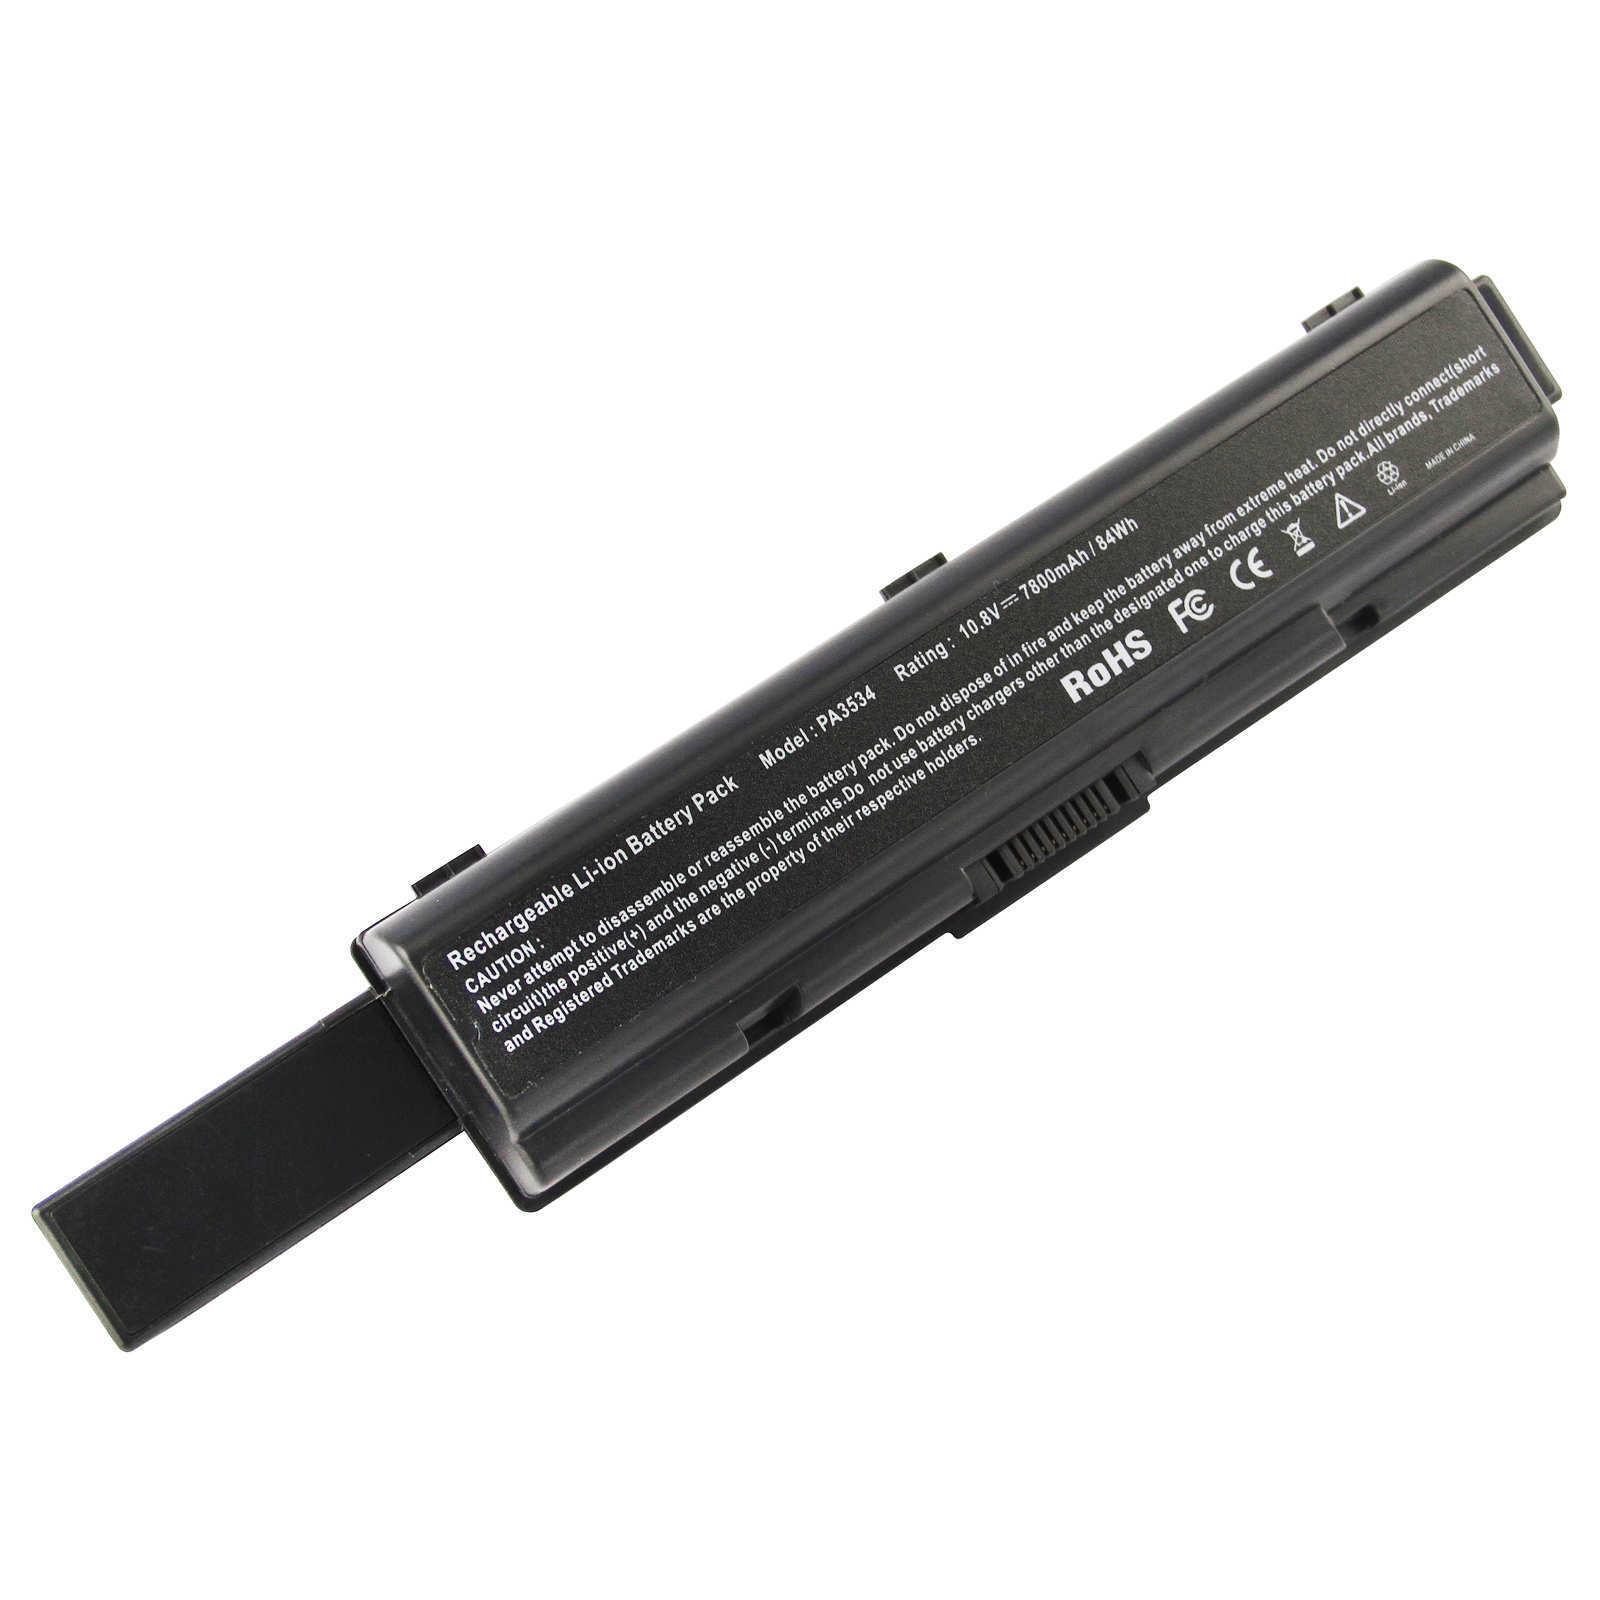 Replacement Toshiba Equium A200 Battery